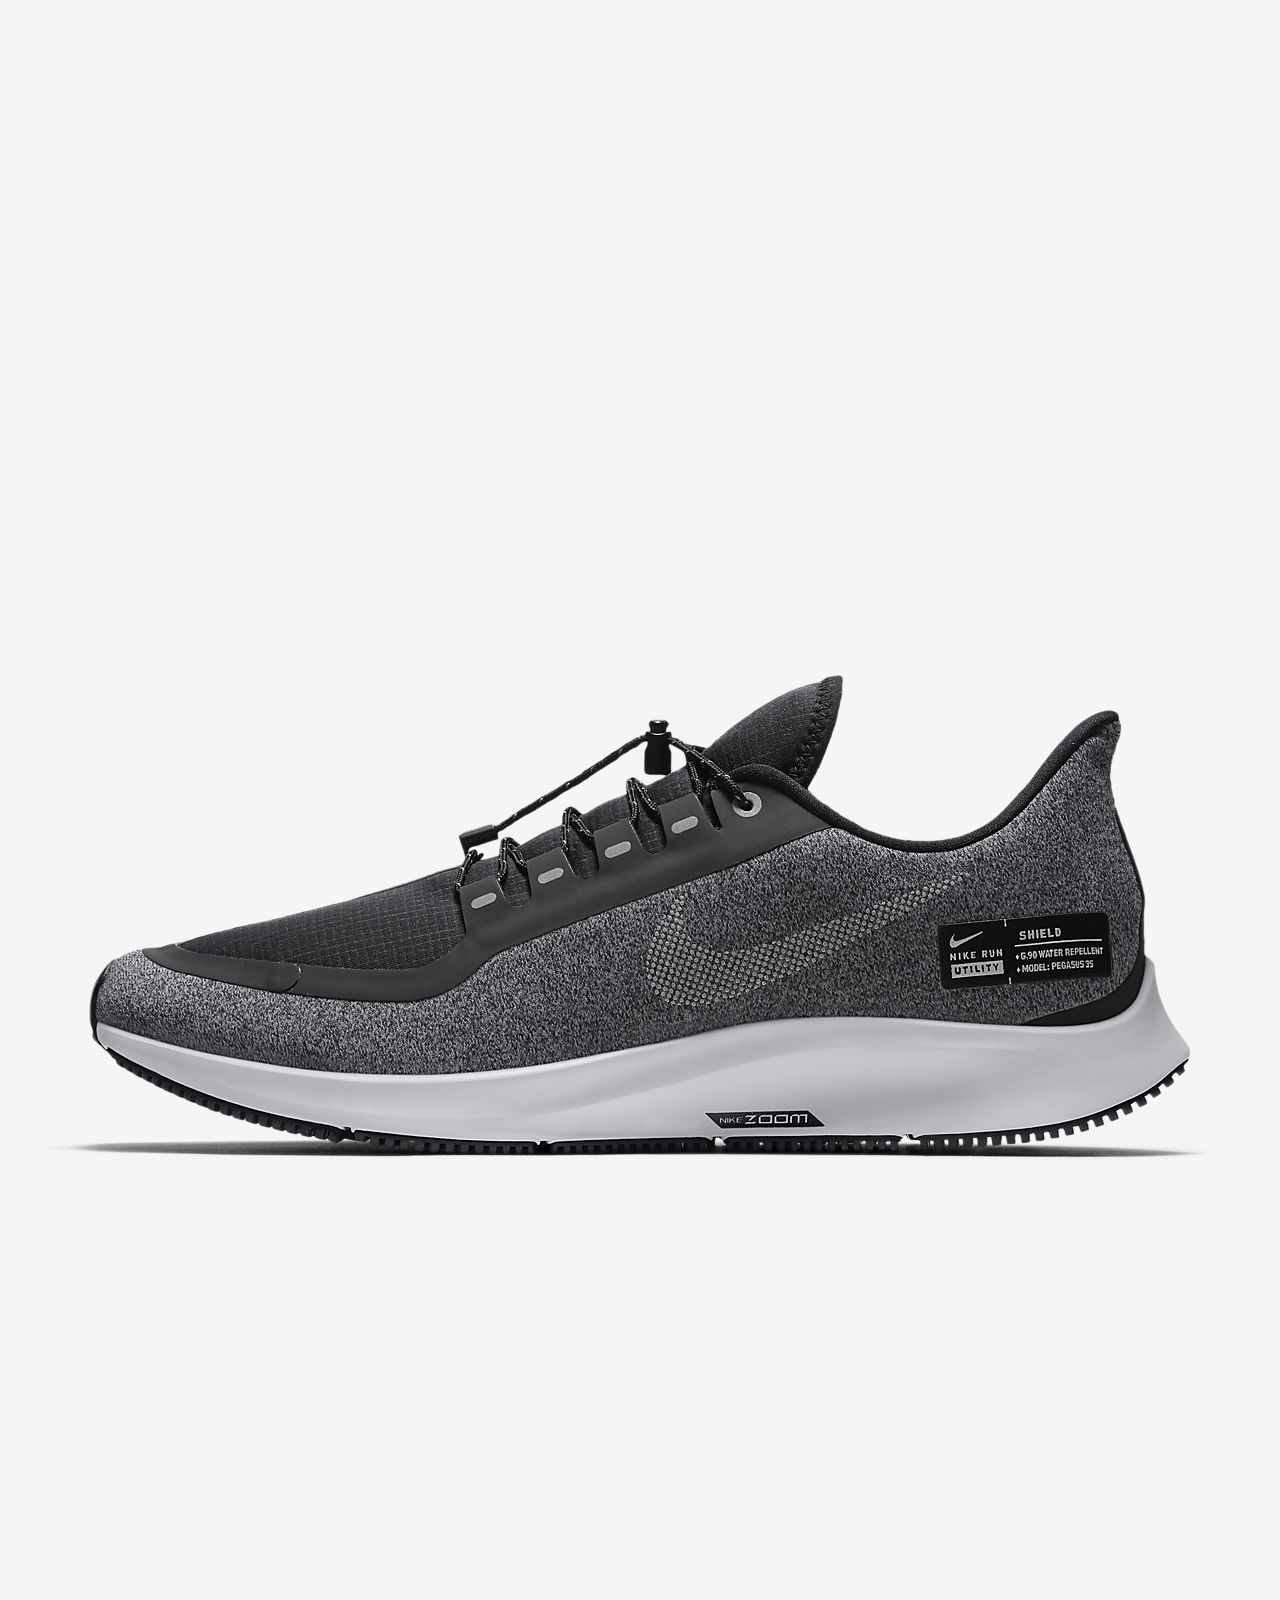 save off c0e5e a3852 ... Chaussure de running Nike Air Zoom Pegasus 35 Shield Water-Repellent  pour Homme